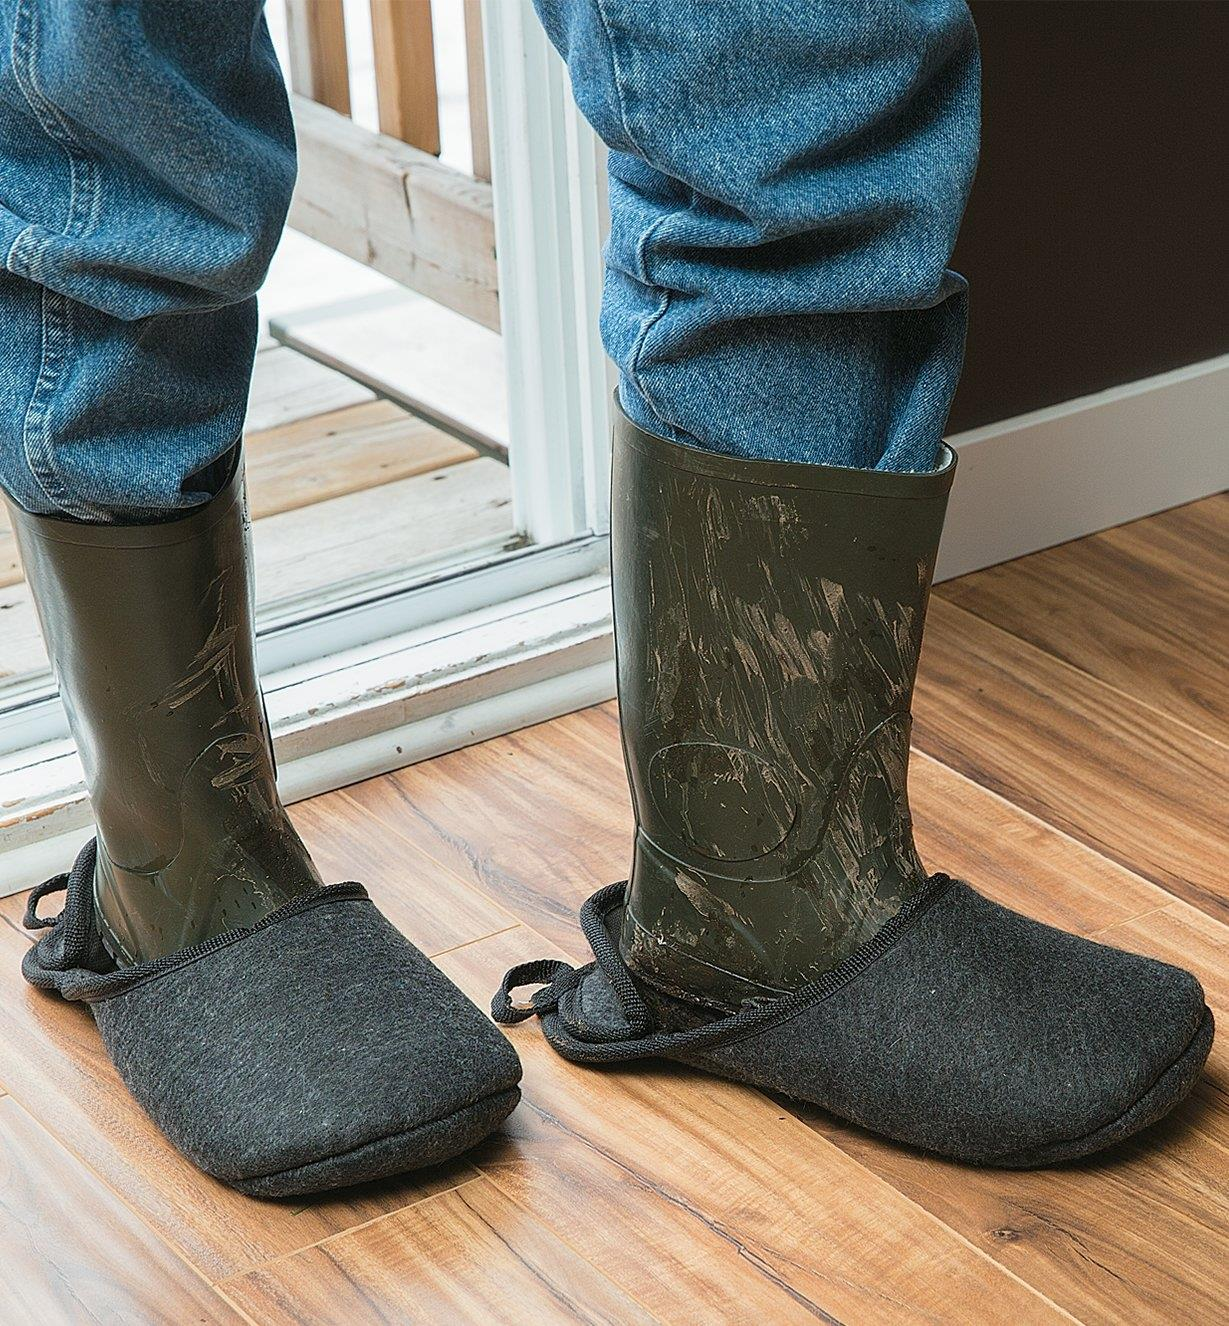 Boot slippers worn over a pair of muddy boots inside a doorway